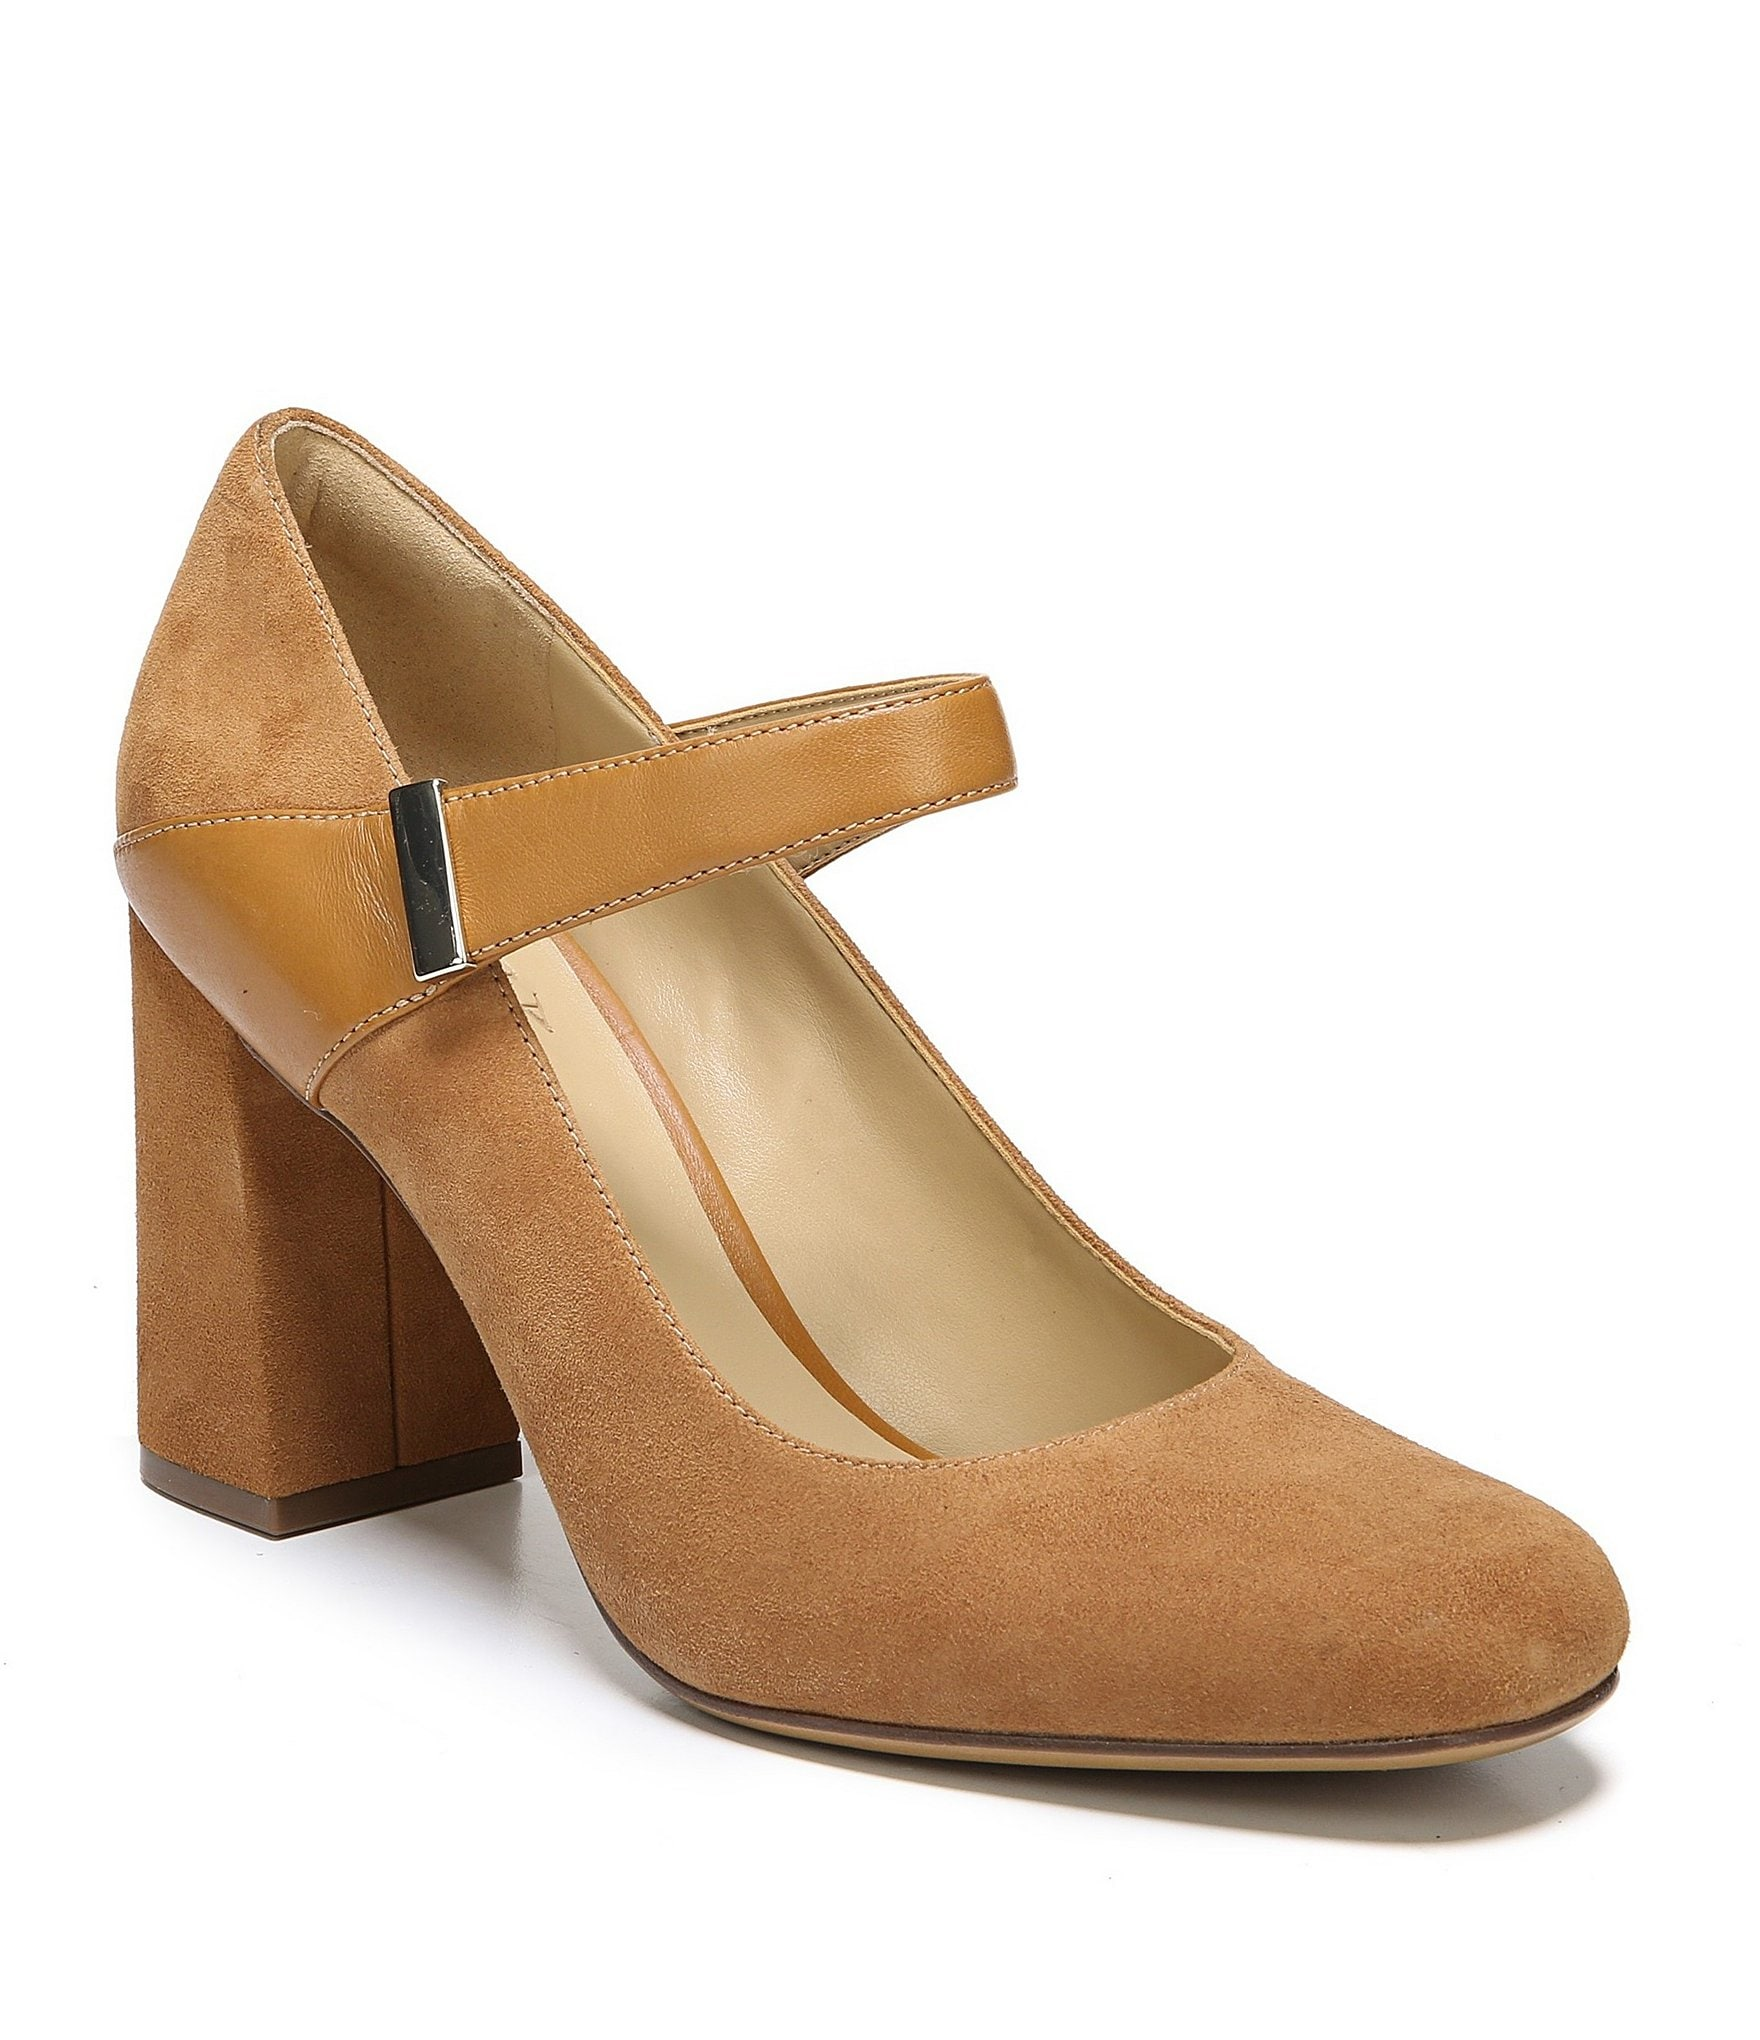 Naturalizer Shoes Clearance Sale